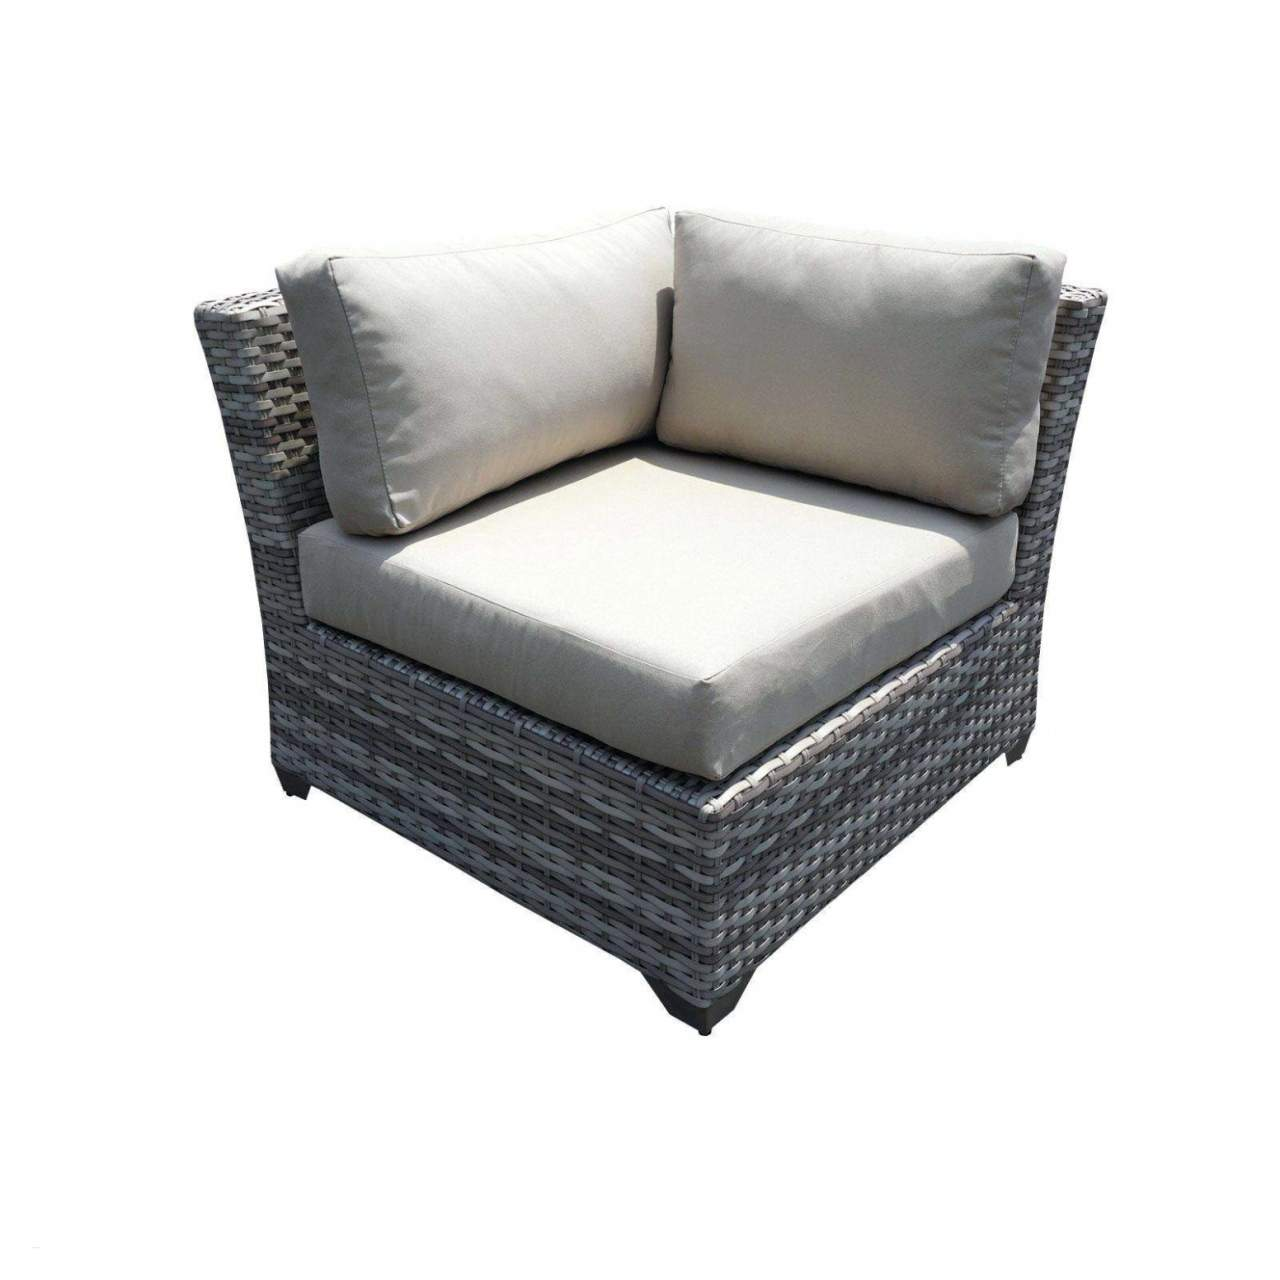 outdoor daybed couch discount luxus patio furniture daybed patio daybed 0d kimya durch outdoor daybed